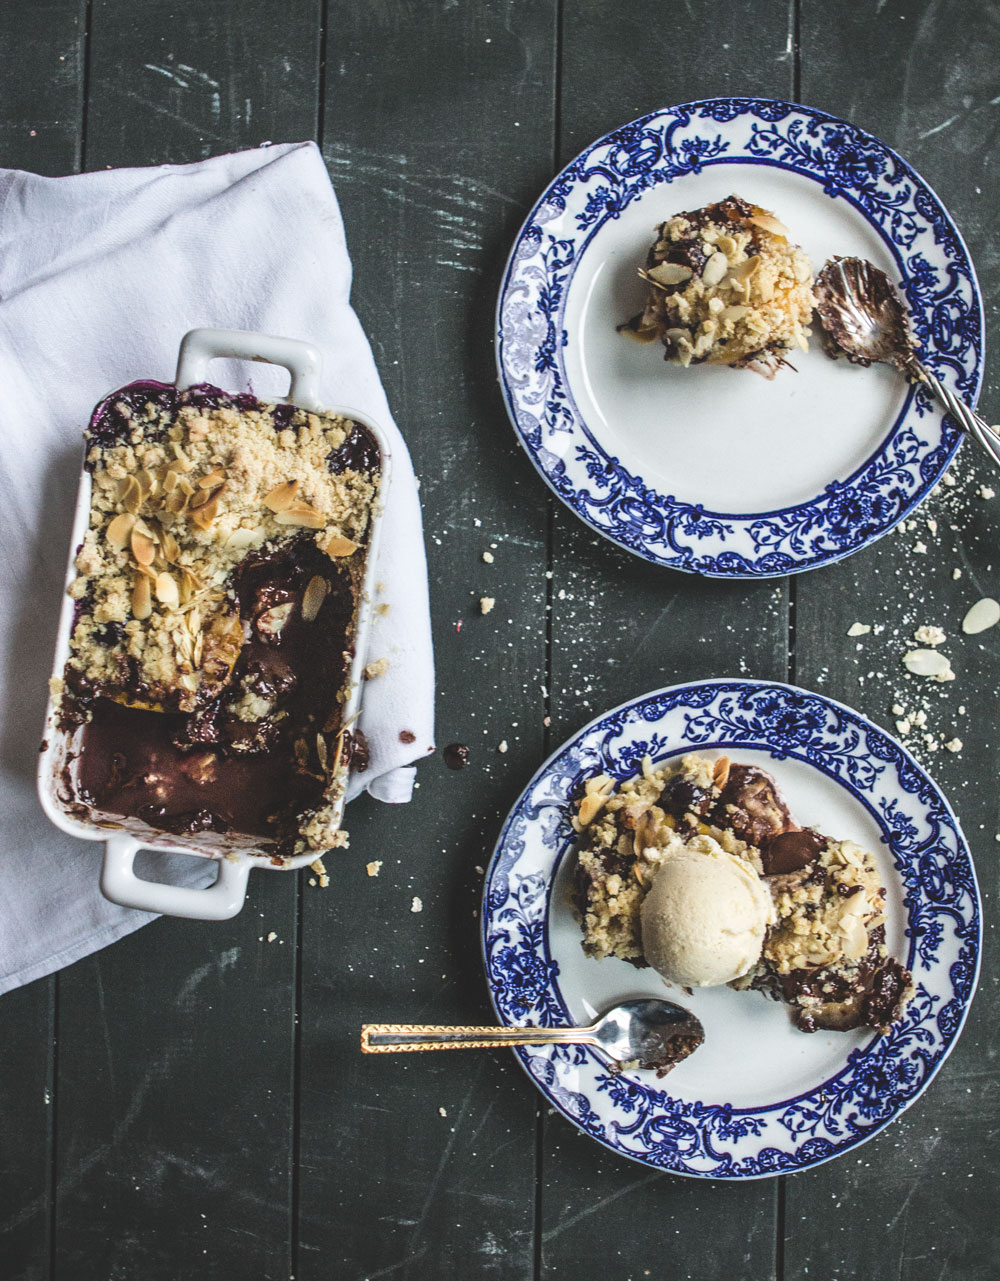 peach, blueberry and chocolate crumble